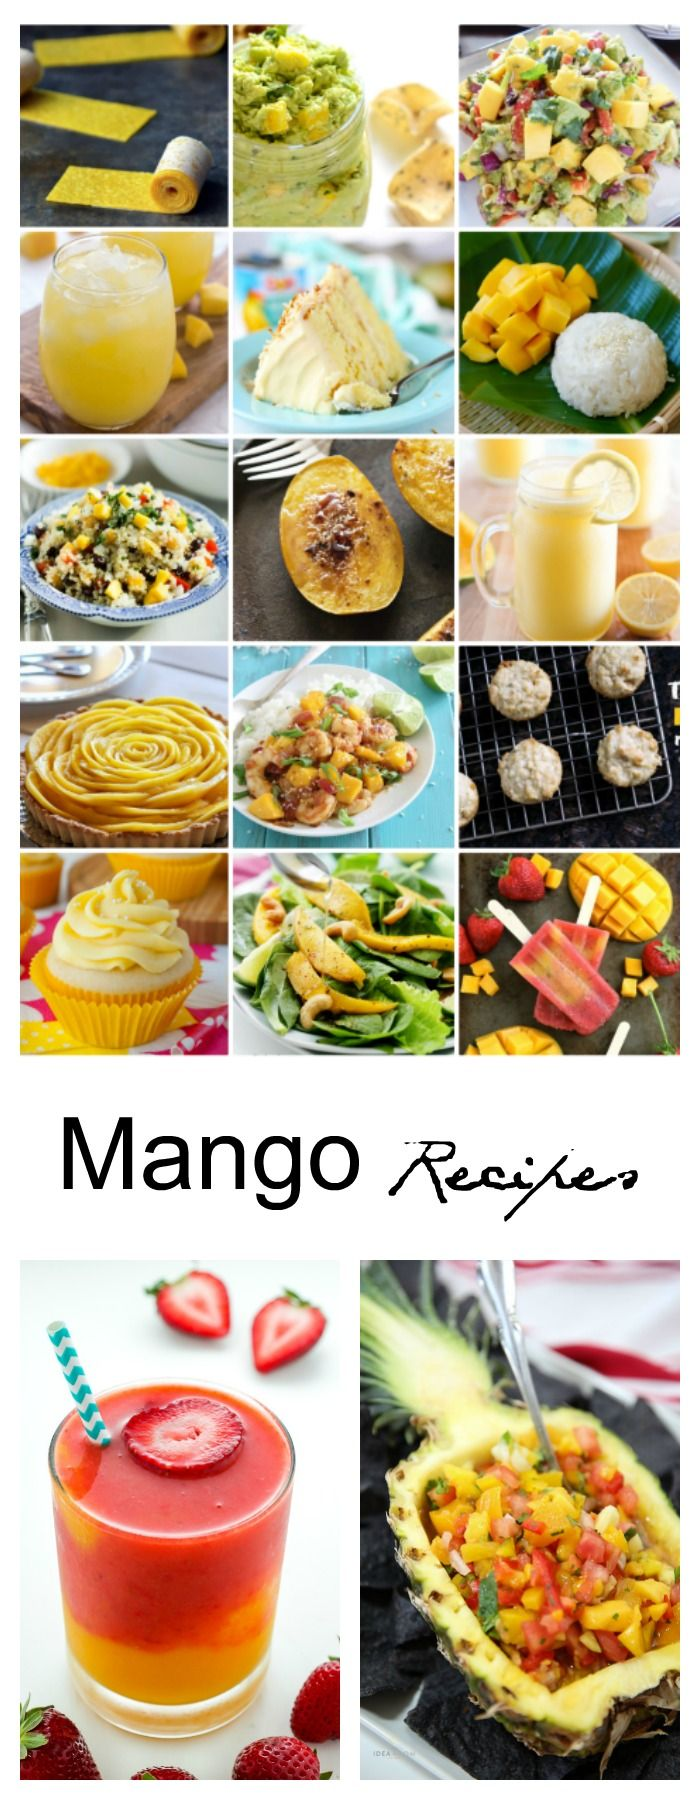 Dessert Ideas| Mango Recipes - Sharing some heavenly Mango Recipes that you are going to want to make and bring to a BBQ or party this Spring and Summer. Enjoy!